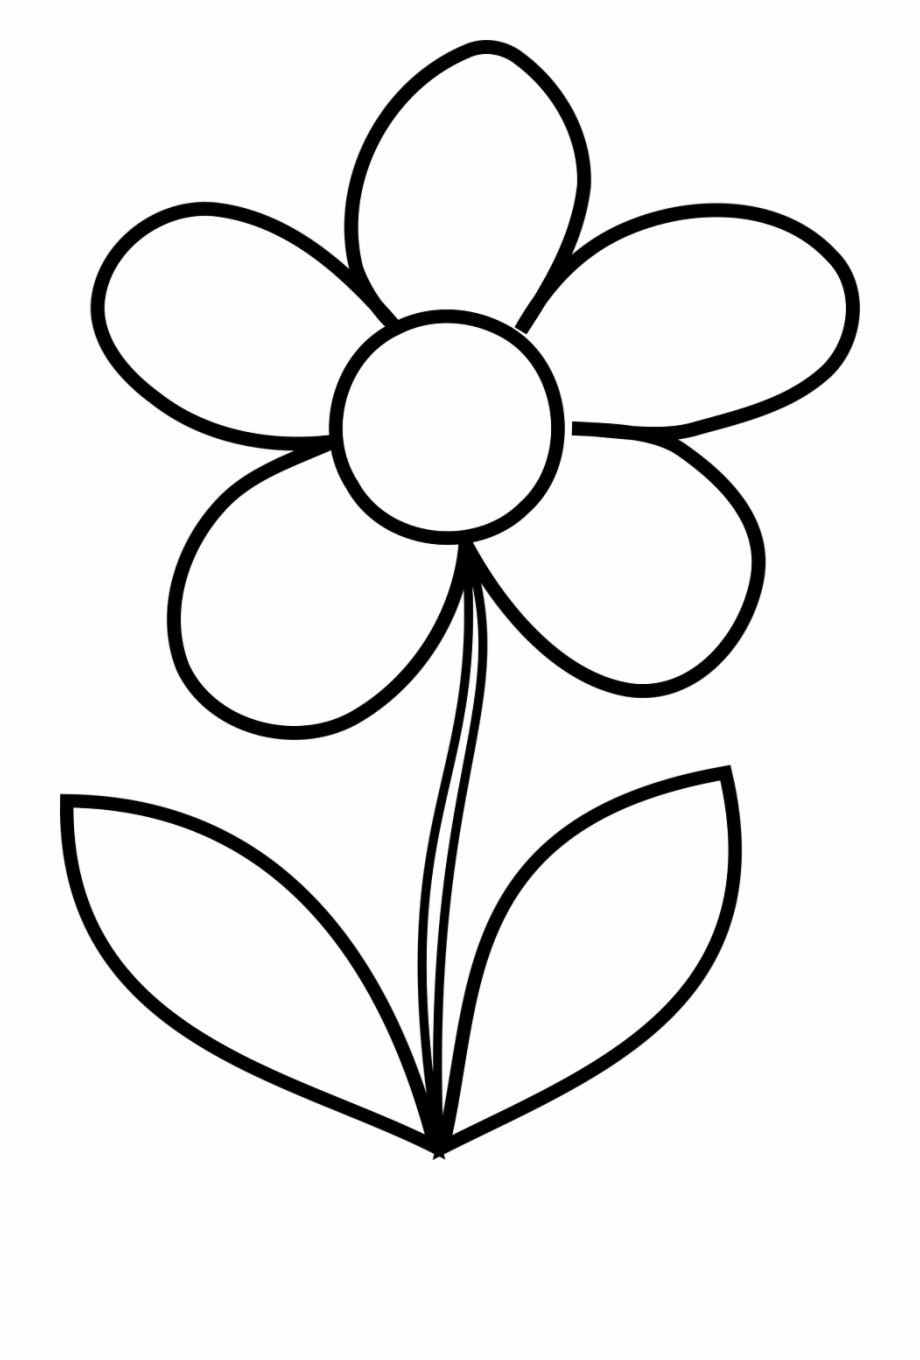 B w crayon clipart red graphic black and white library Black And White Crayon Monochrome Free Picture - Flower Clip Art Bw ... graphic black and white library